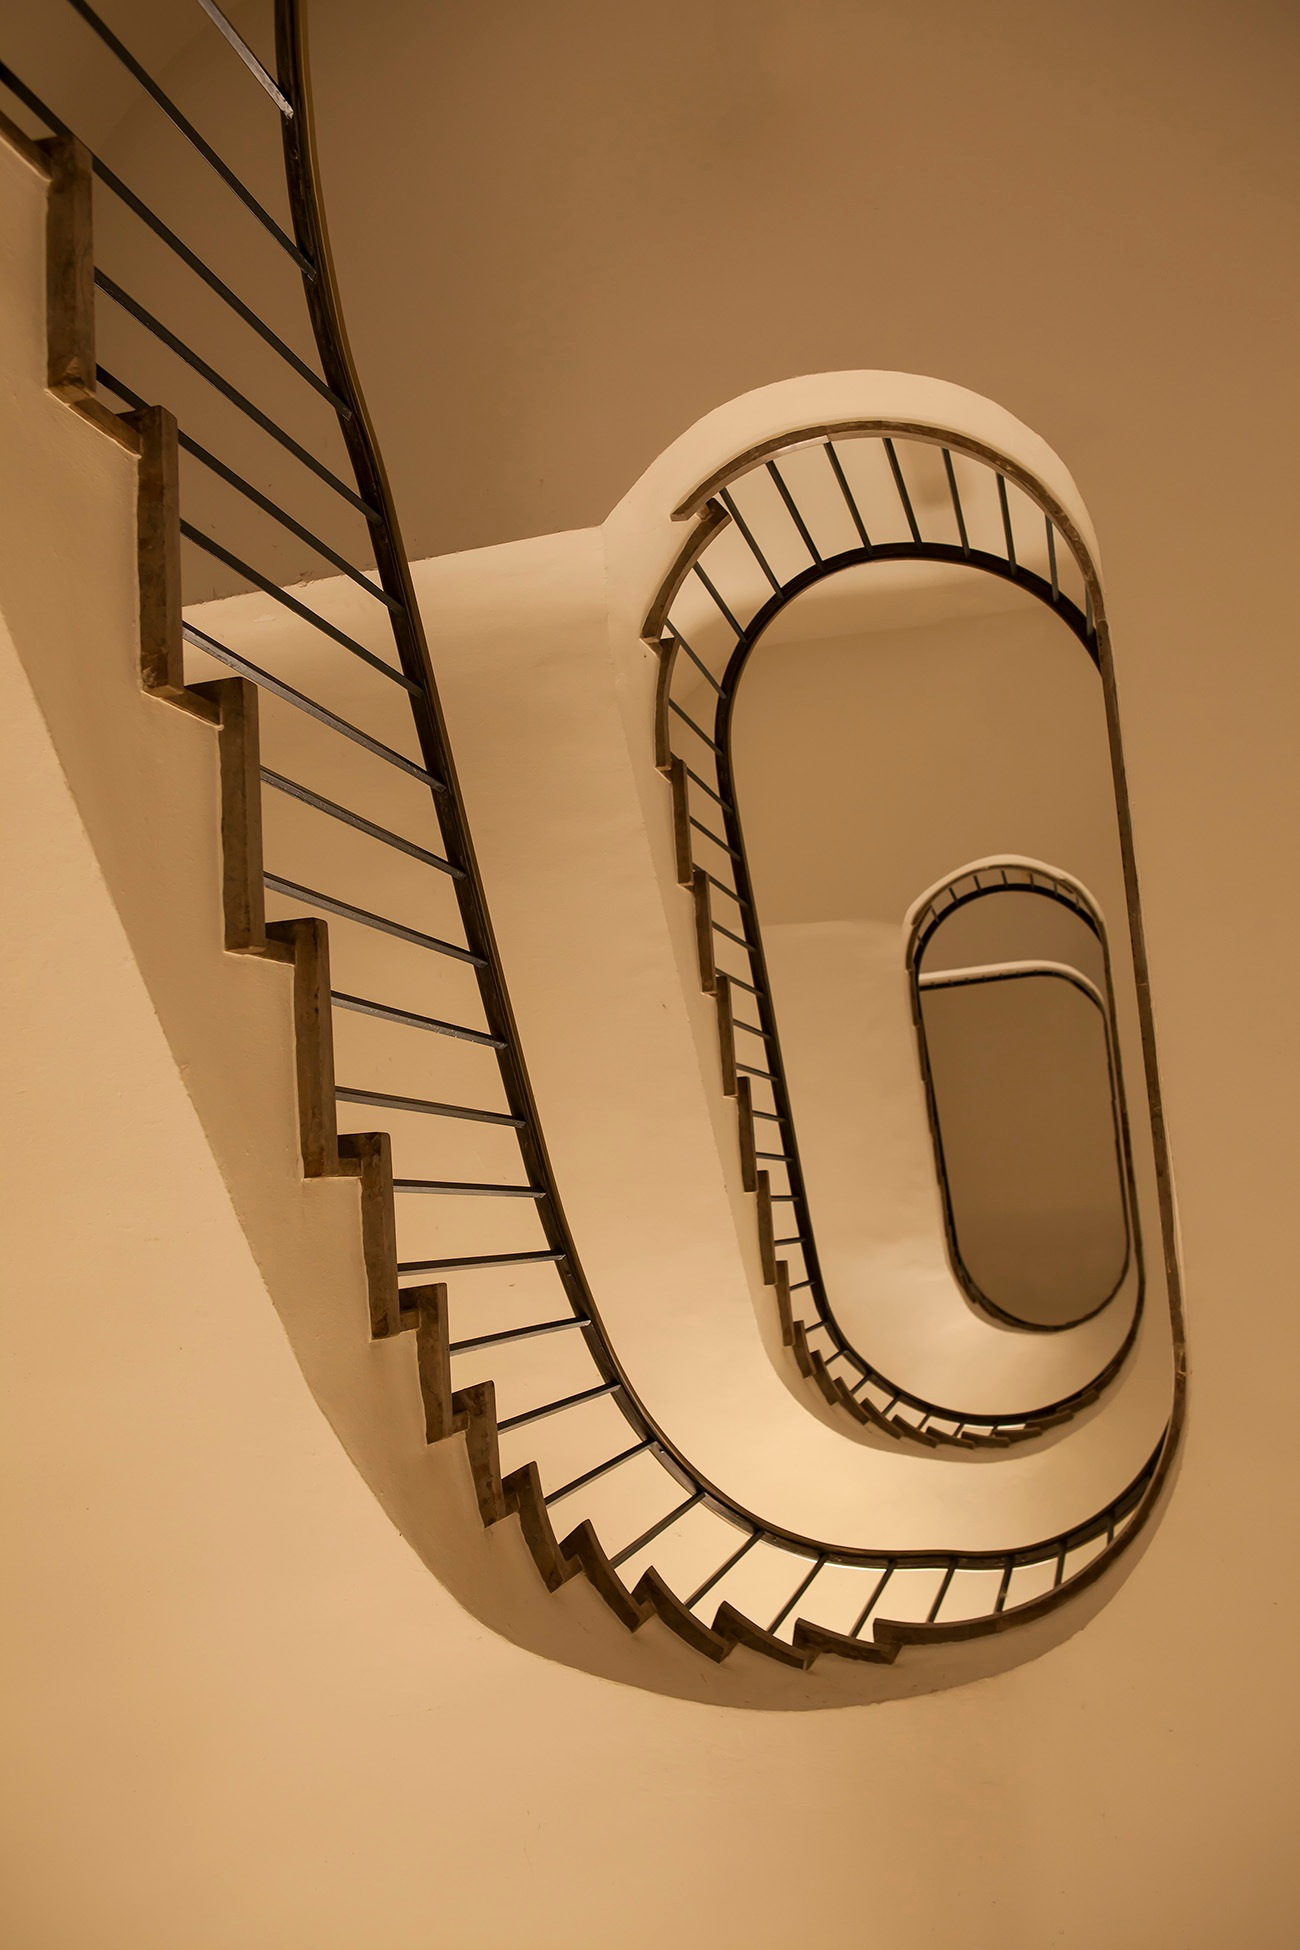 Swirling stairs by JaneCampbell21